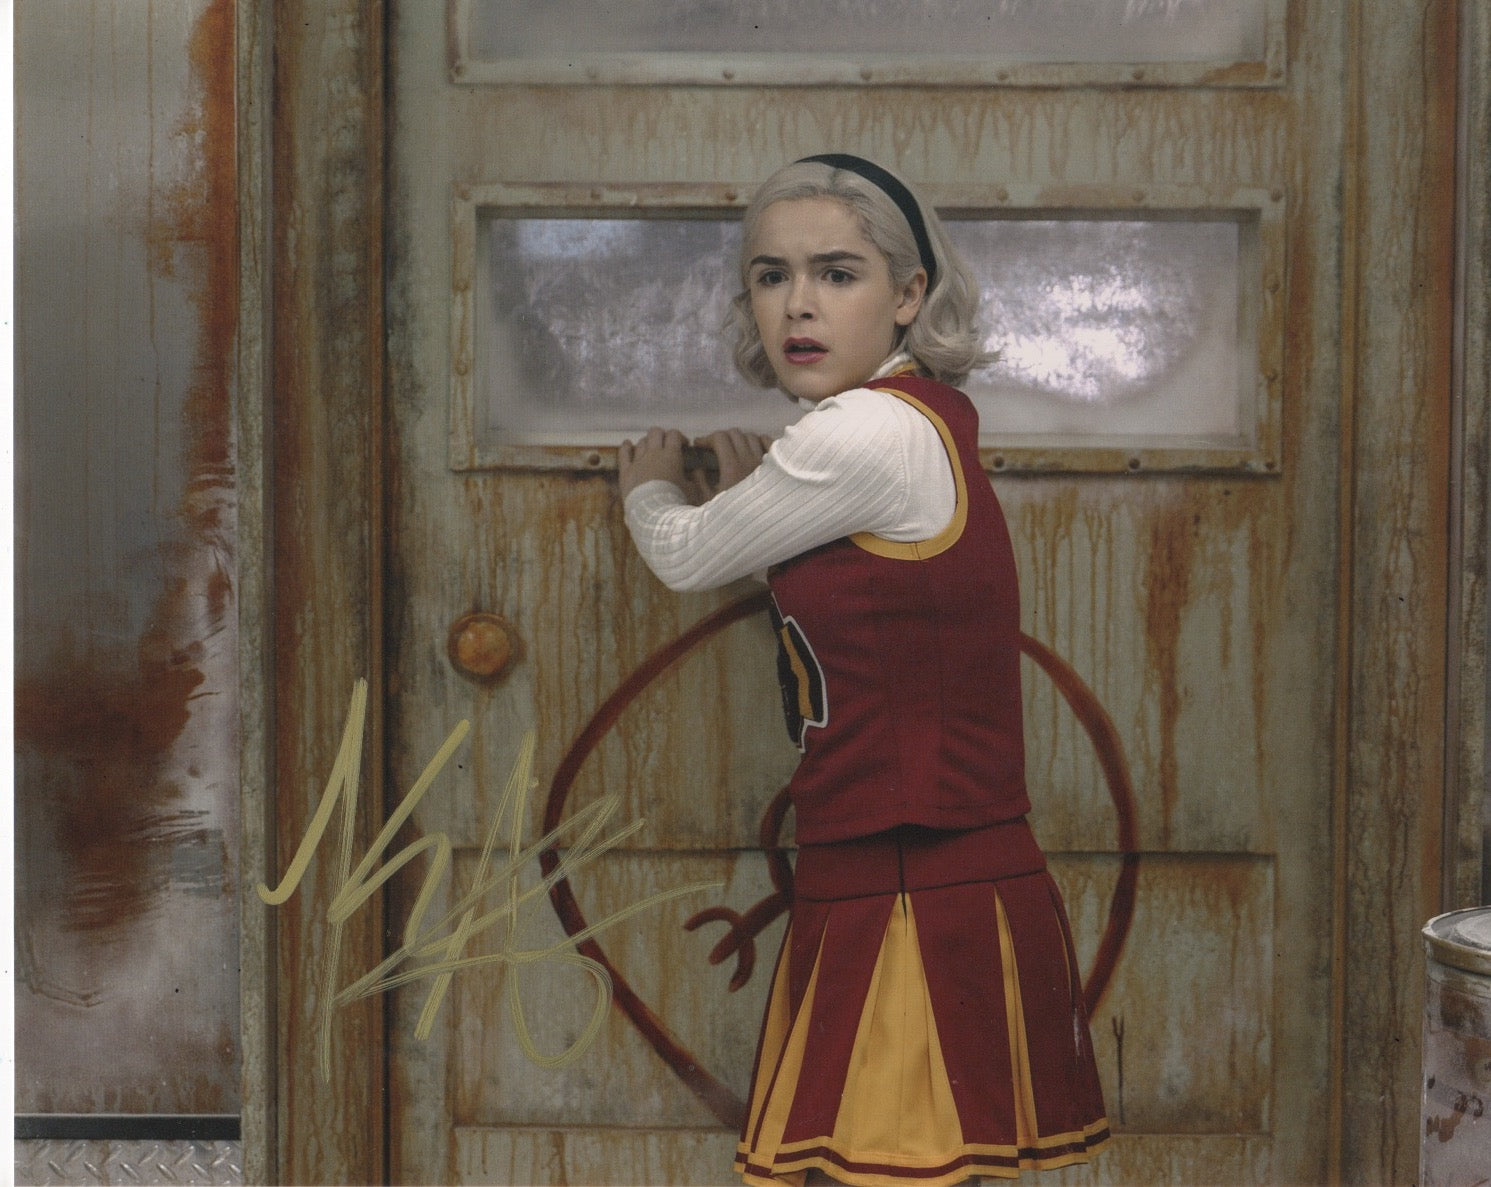 Kiernan Shipka Chilling Adventures Sabrina Signed Autograph 8x10 Photo #45 - Outlaw Hobbies Authentic Autographs